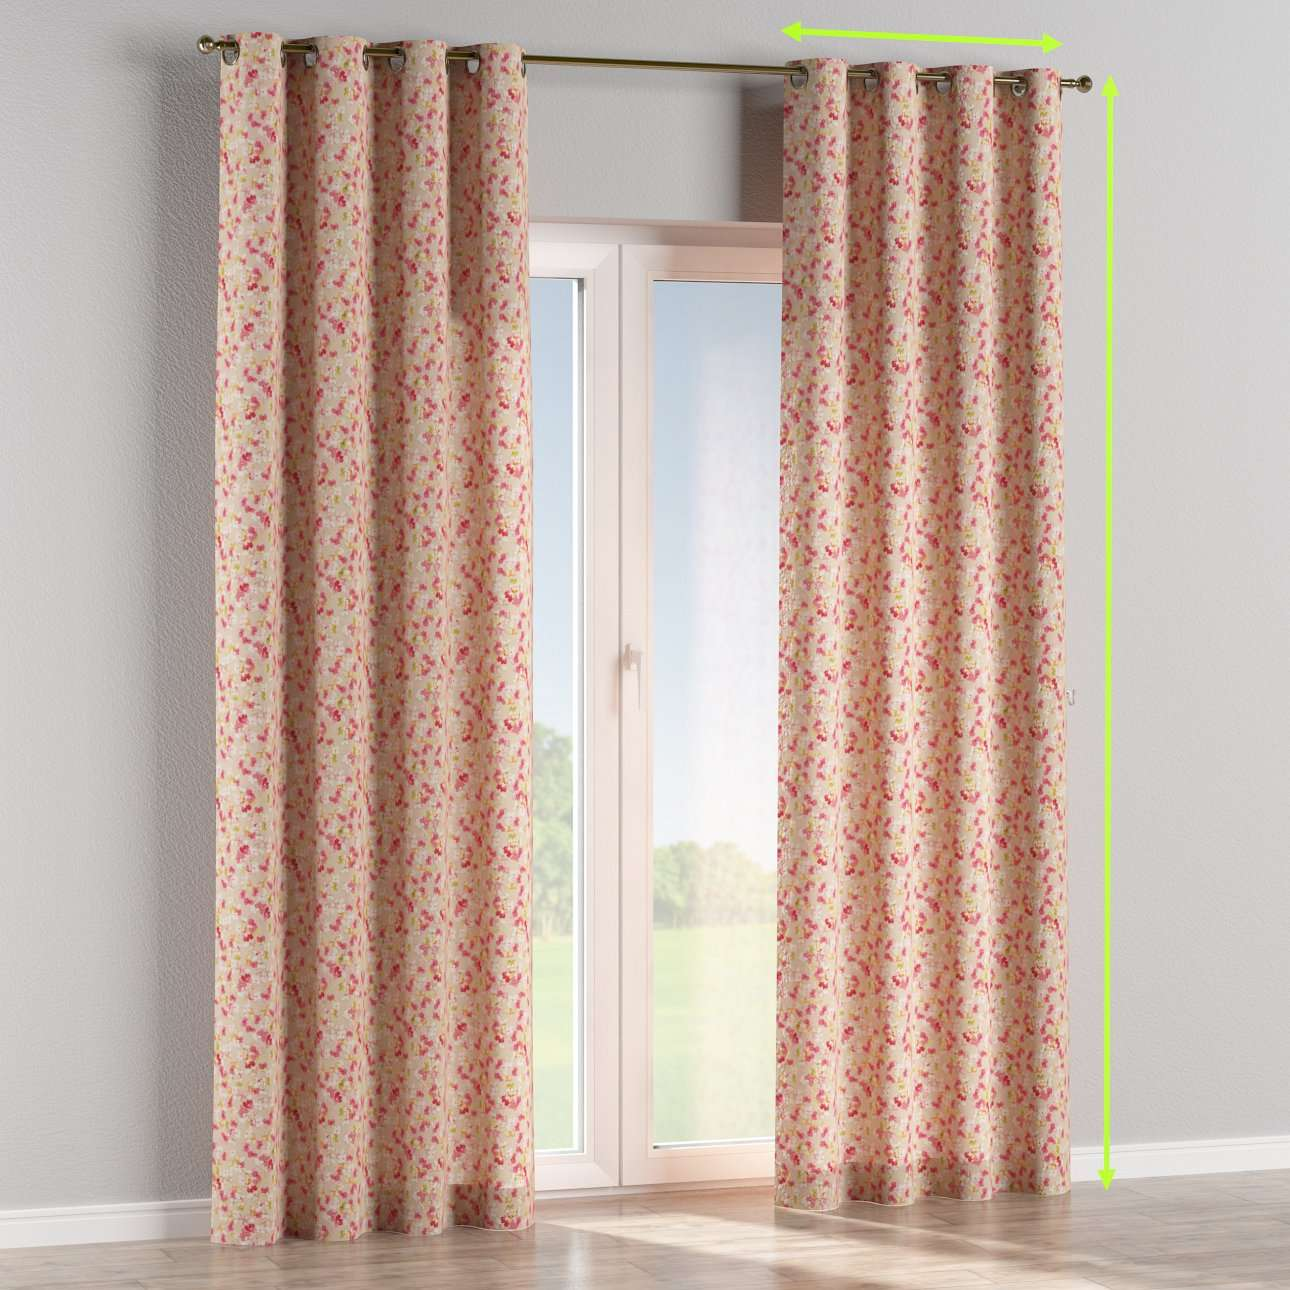 Eyelet curtains in collection Londres, fabric: 140-47